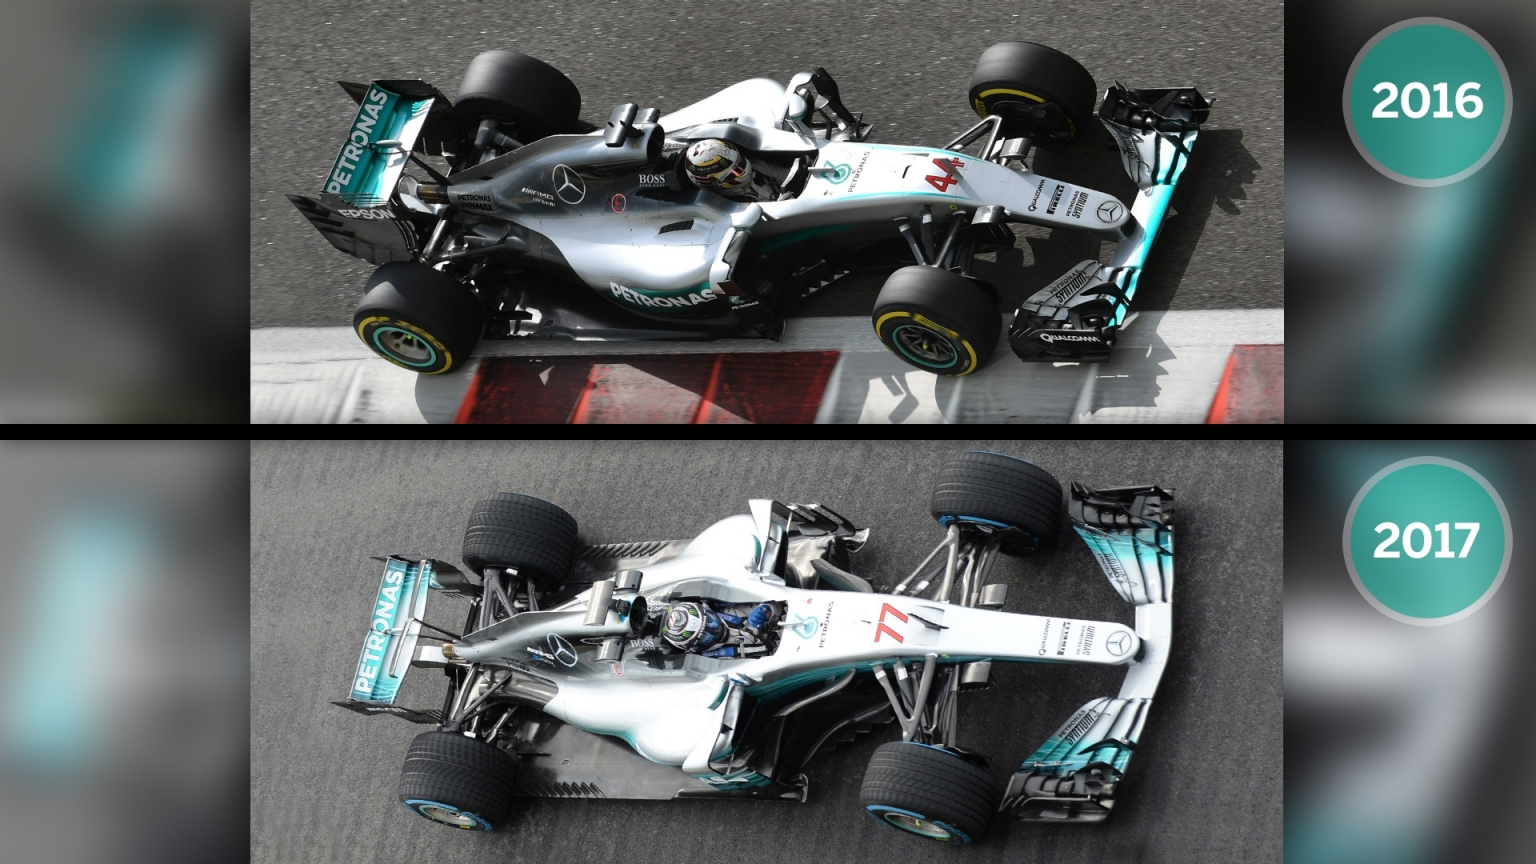 gallery: how the 2017 mercedes compares to last year's car